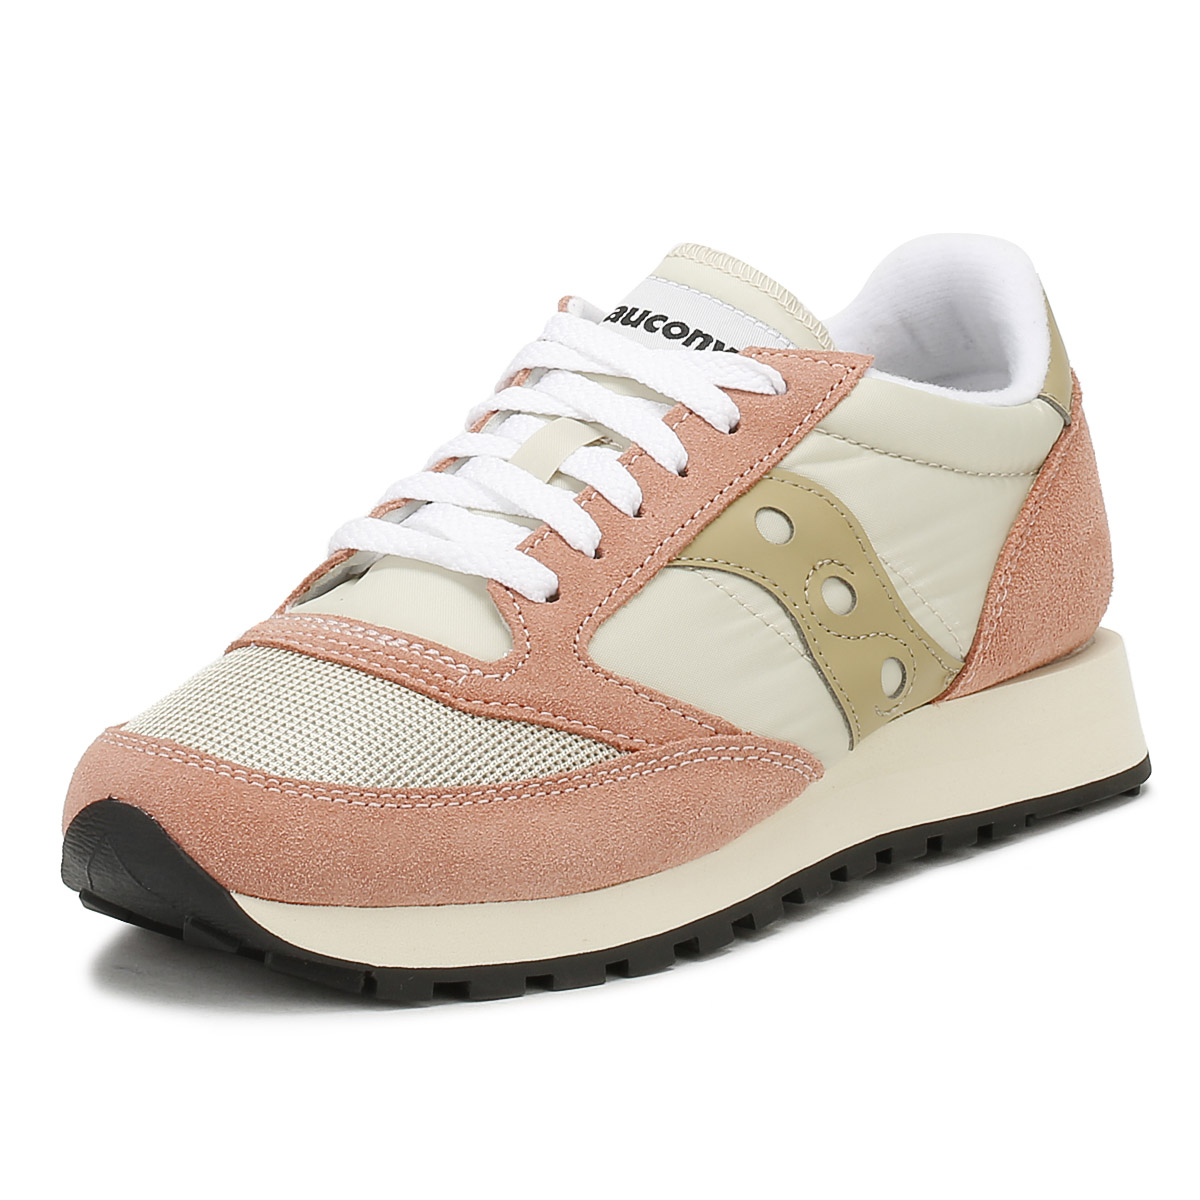 f8805e7ff87b Details about Saucony Womens Trainers Tan   Muted Clay Jazz Original  Vintage Casual Shoes